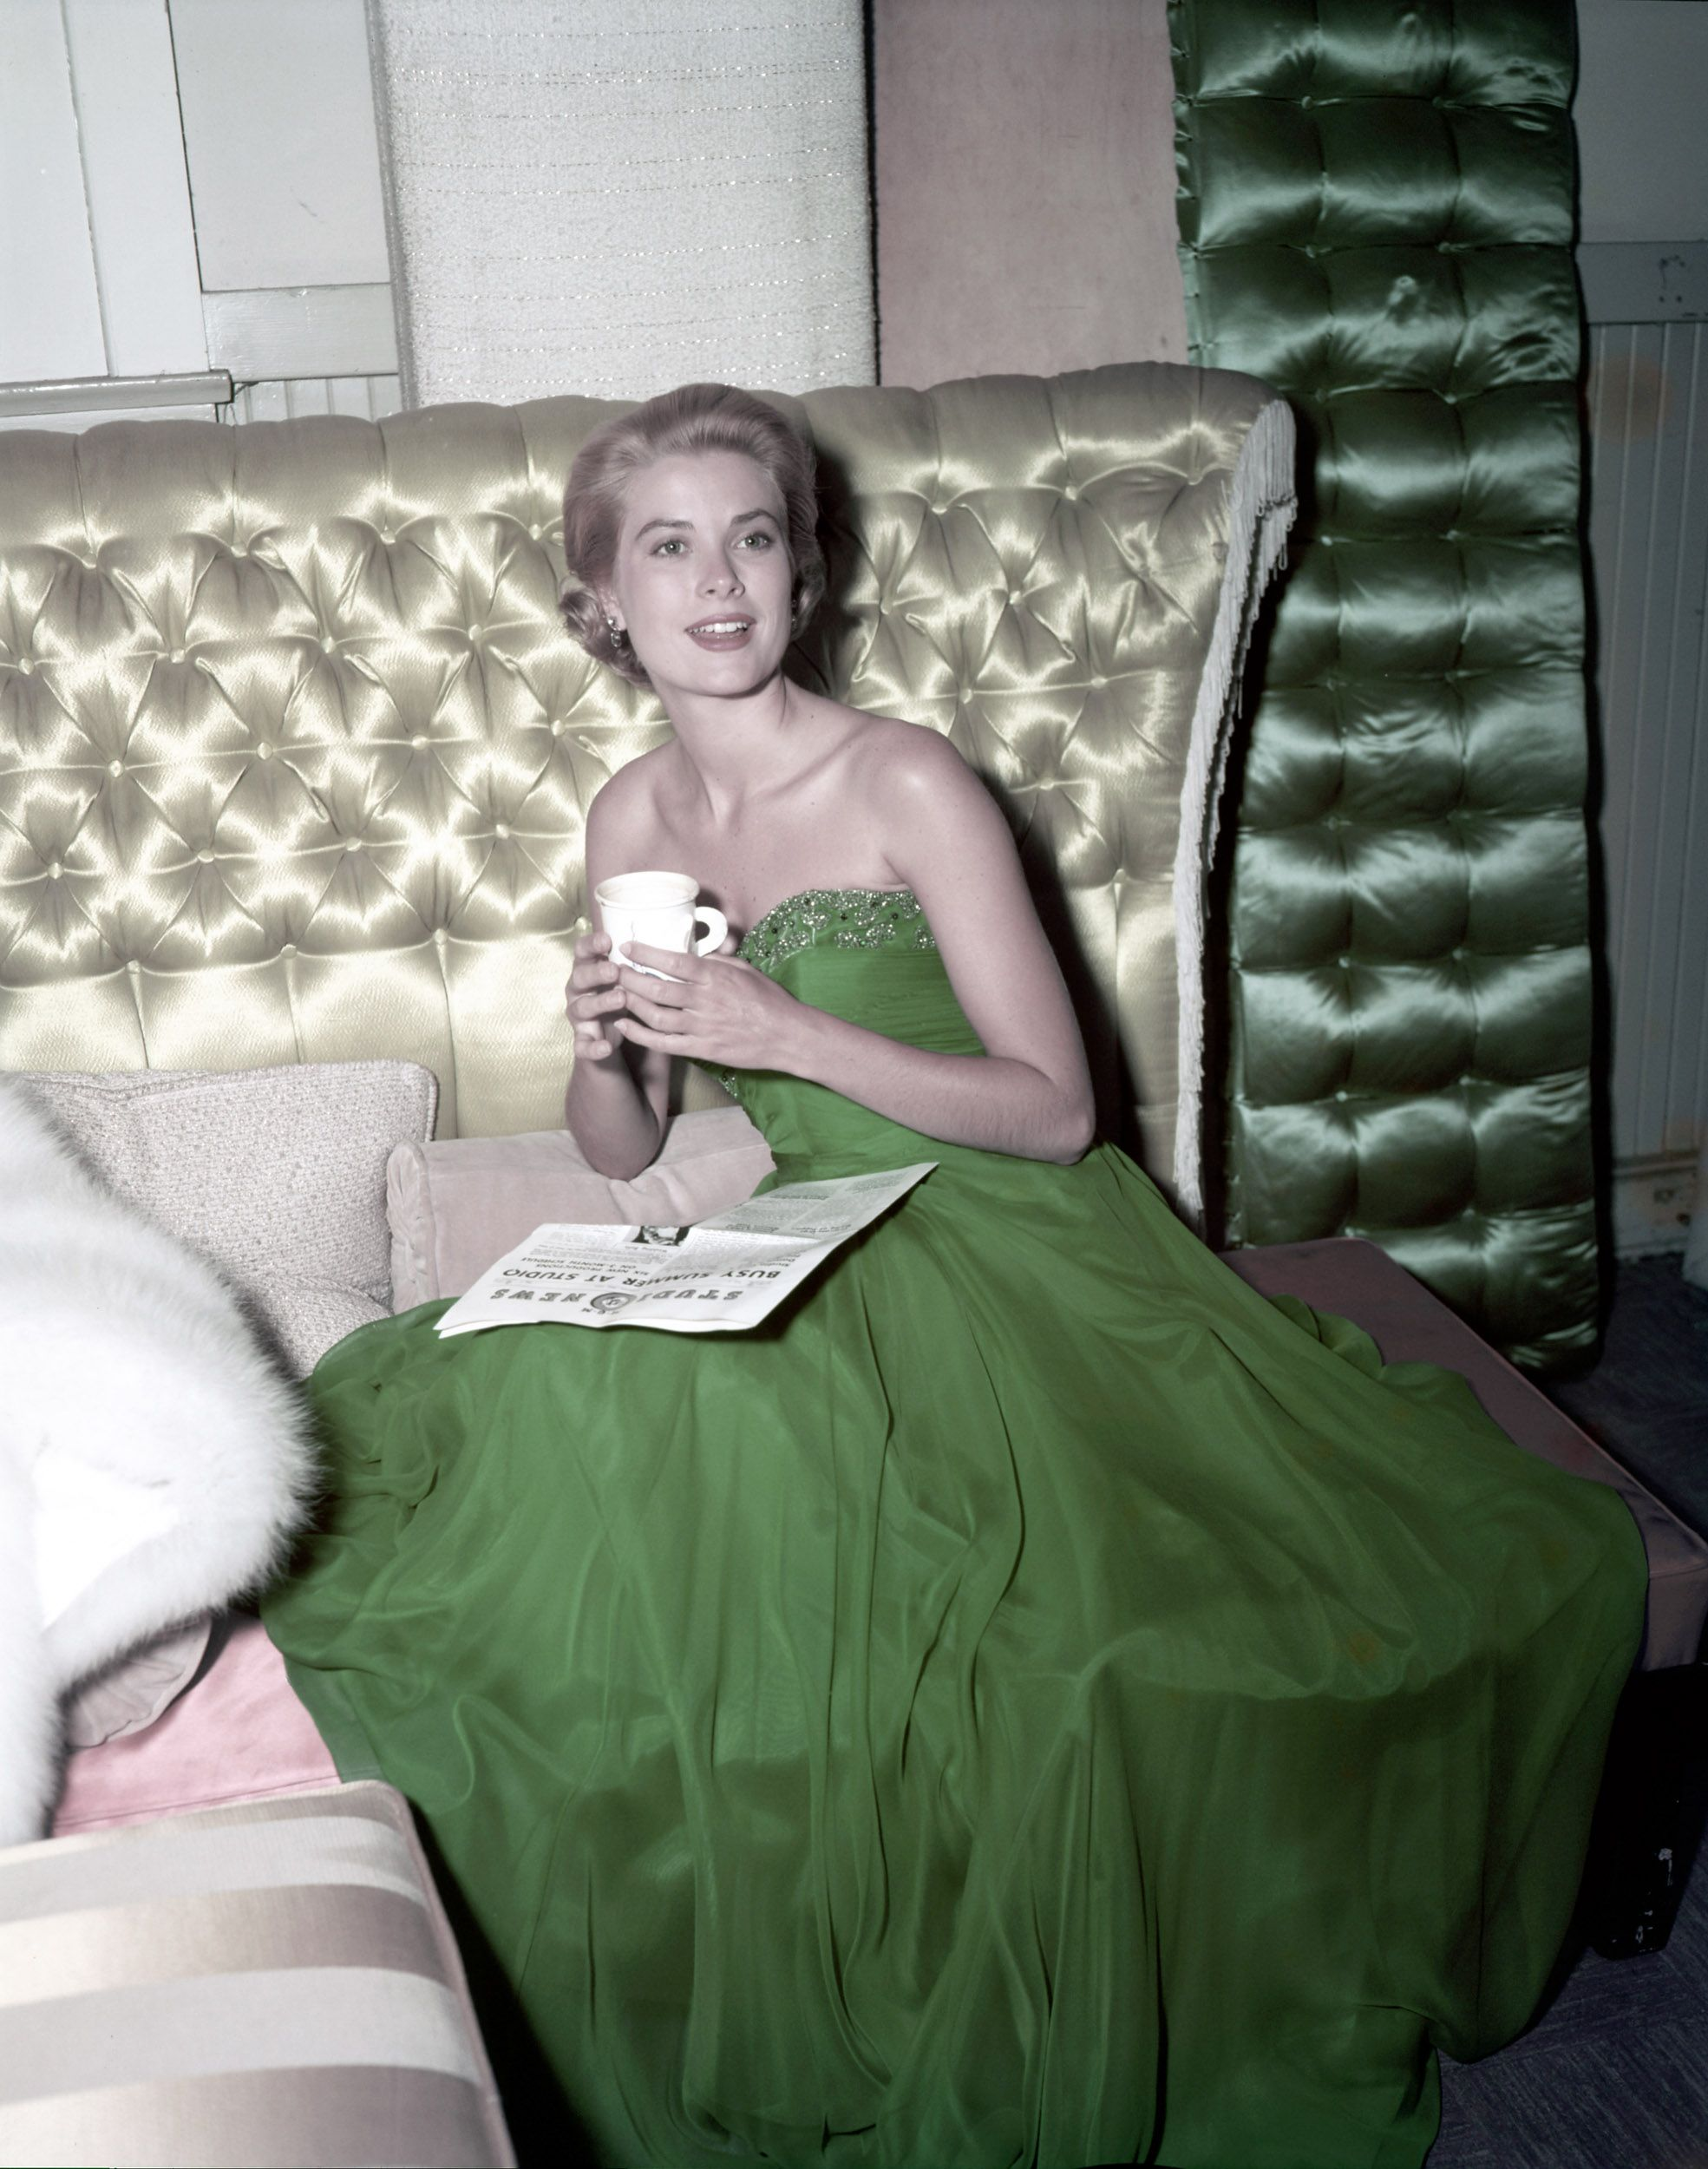 Grace Kelly wearing a green dress for St. Patrick's Day in 1954.